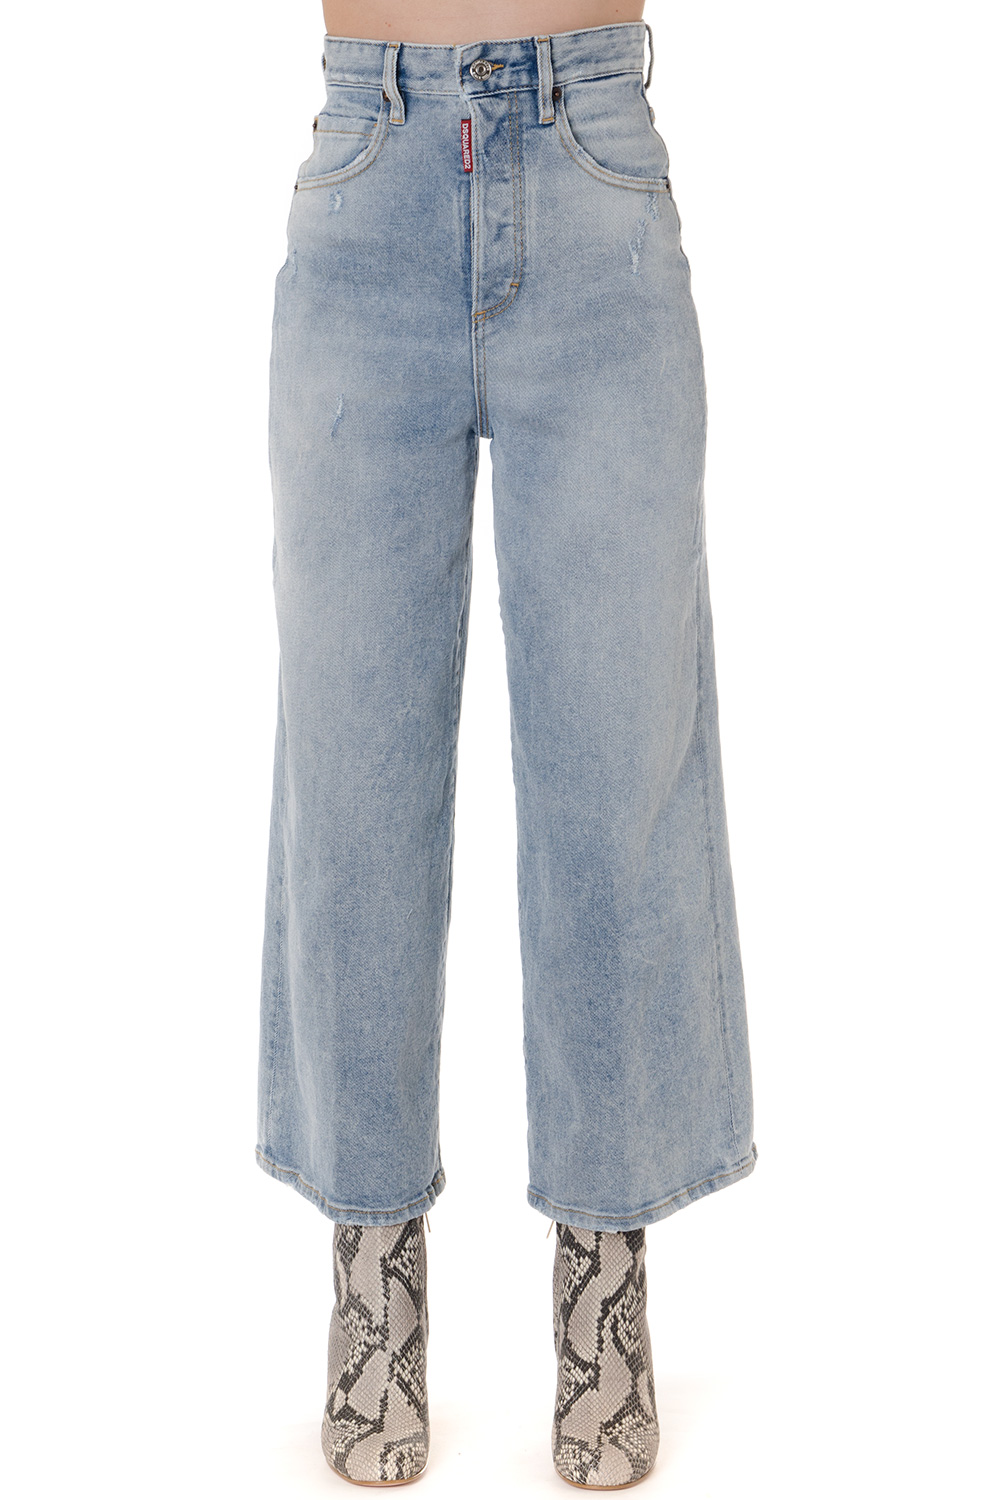 free shipping promo code great fit LIGHT BLUE HIGH WAIST WIDE LEG CROPPED JEANS FW 2019